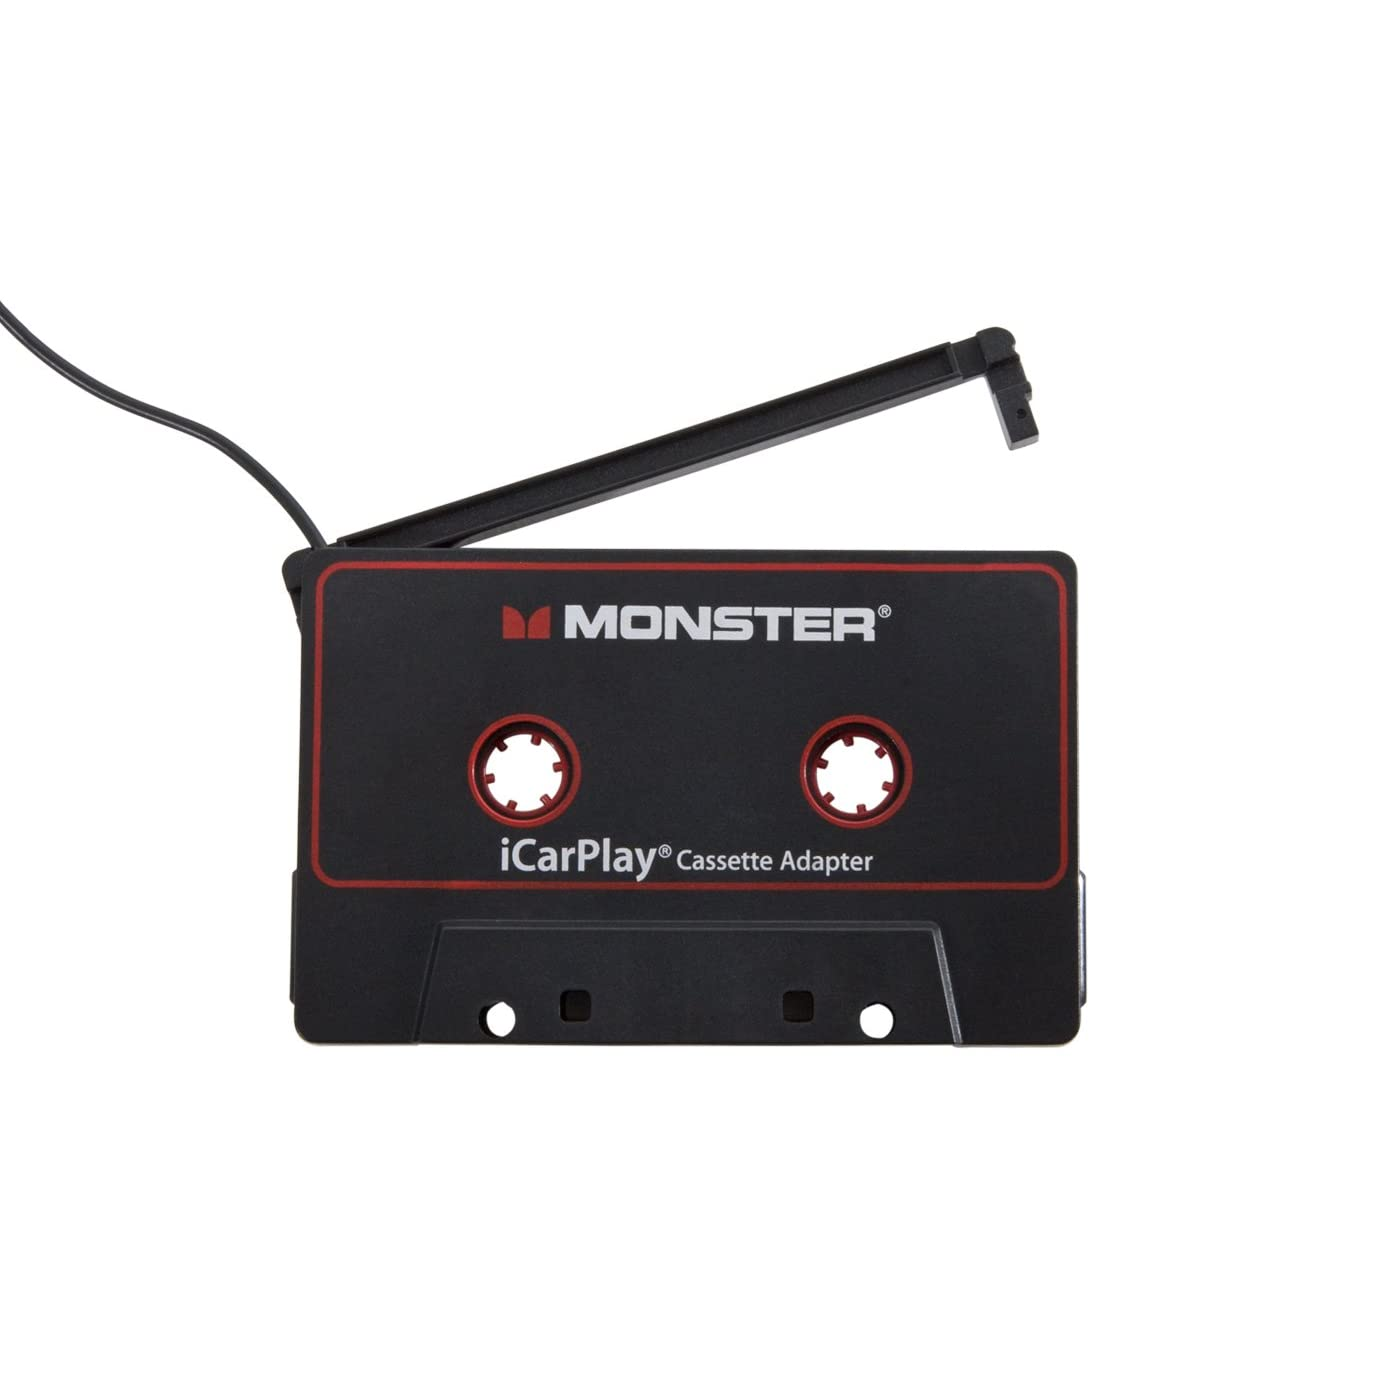 Amazon.com: Monster iCarPlay Cassette Adapter 800 for iPod